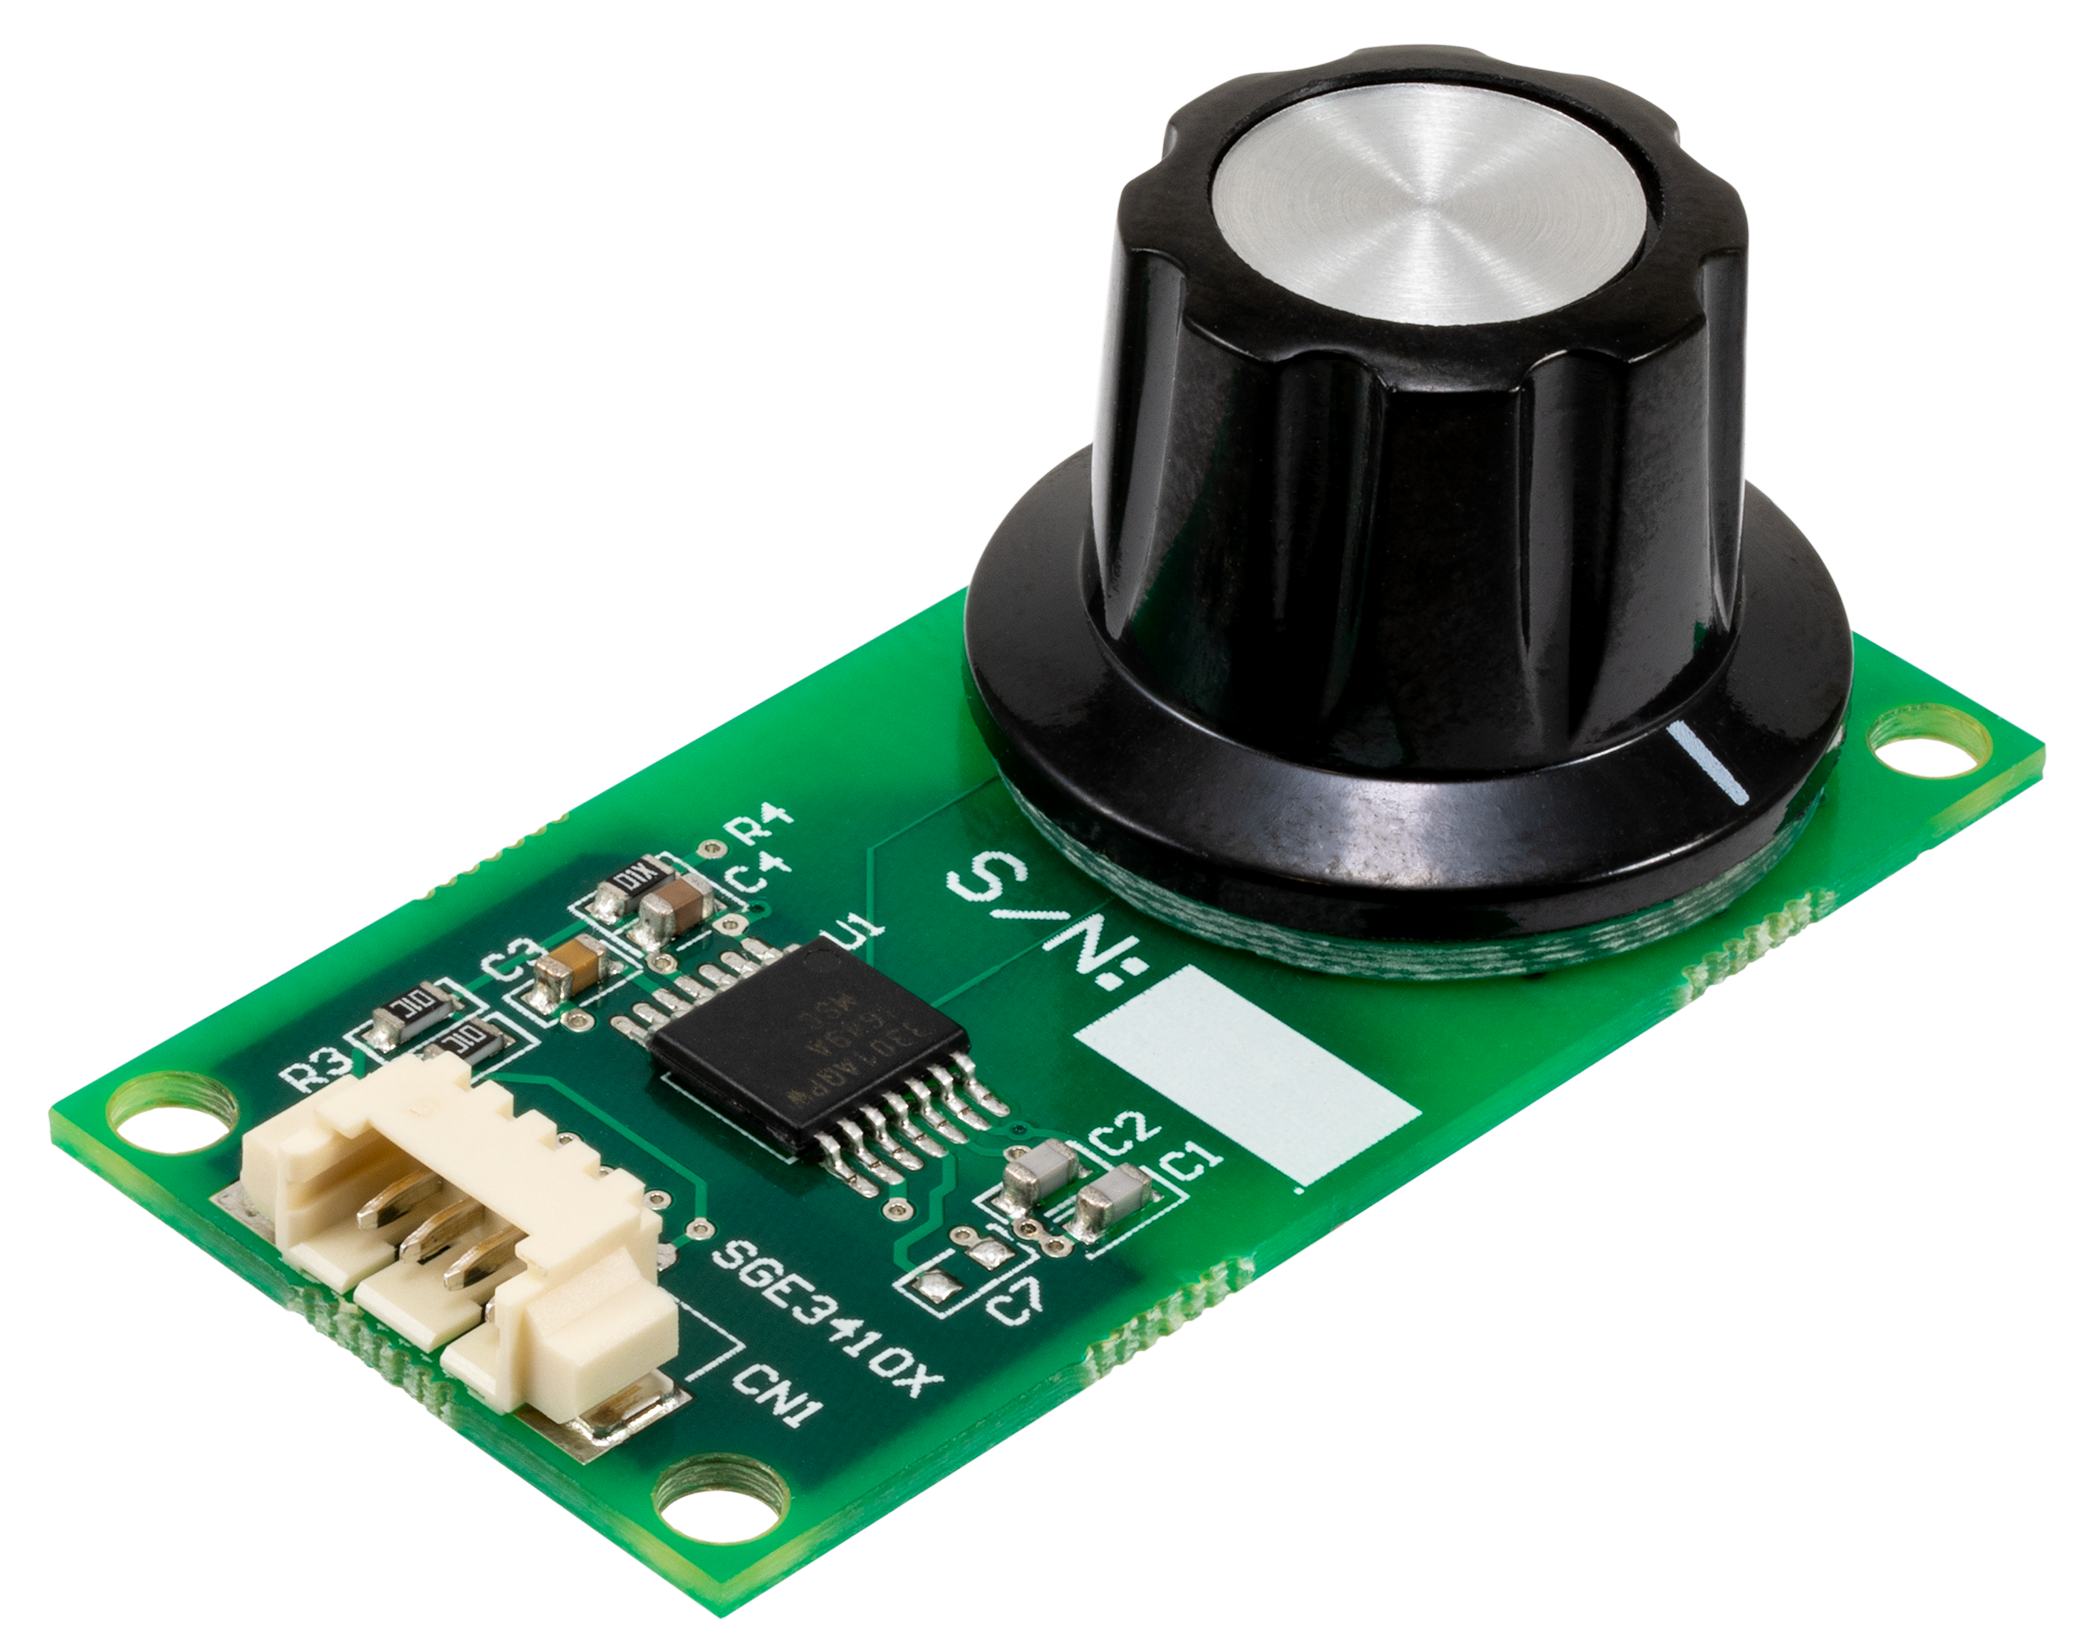 LX3301A 120 Degree Rotary Inductive Position Sensor Evaluation Board